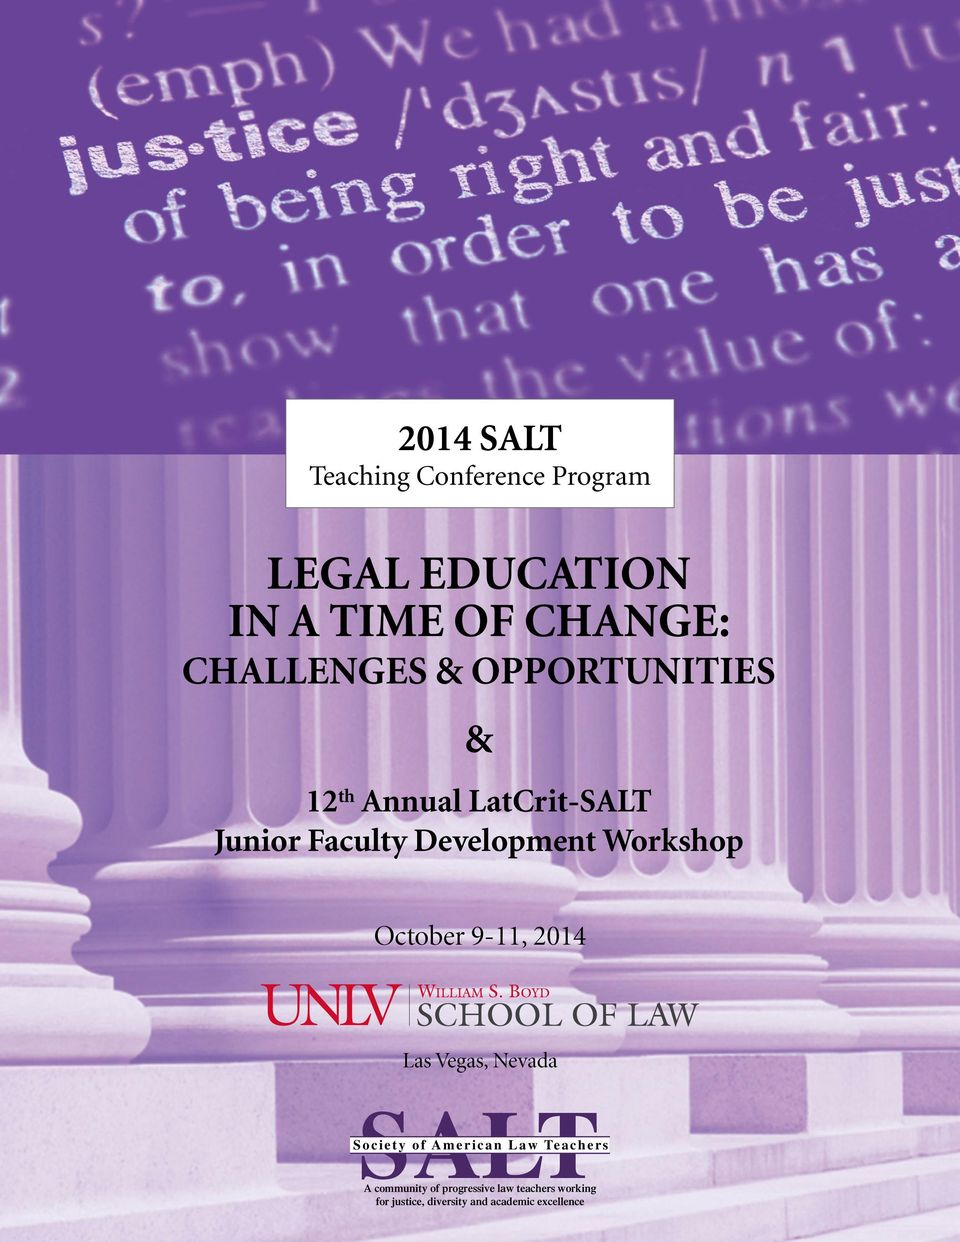 Workshop October 9-11, 2014 Las Vegas, Nevada SALT Society of American Law Teachers